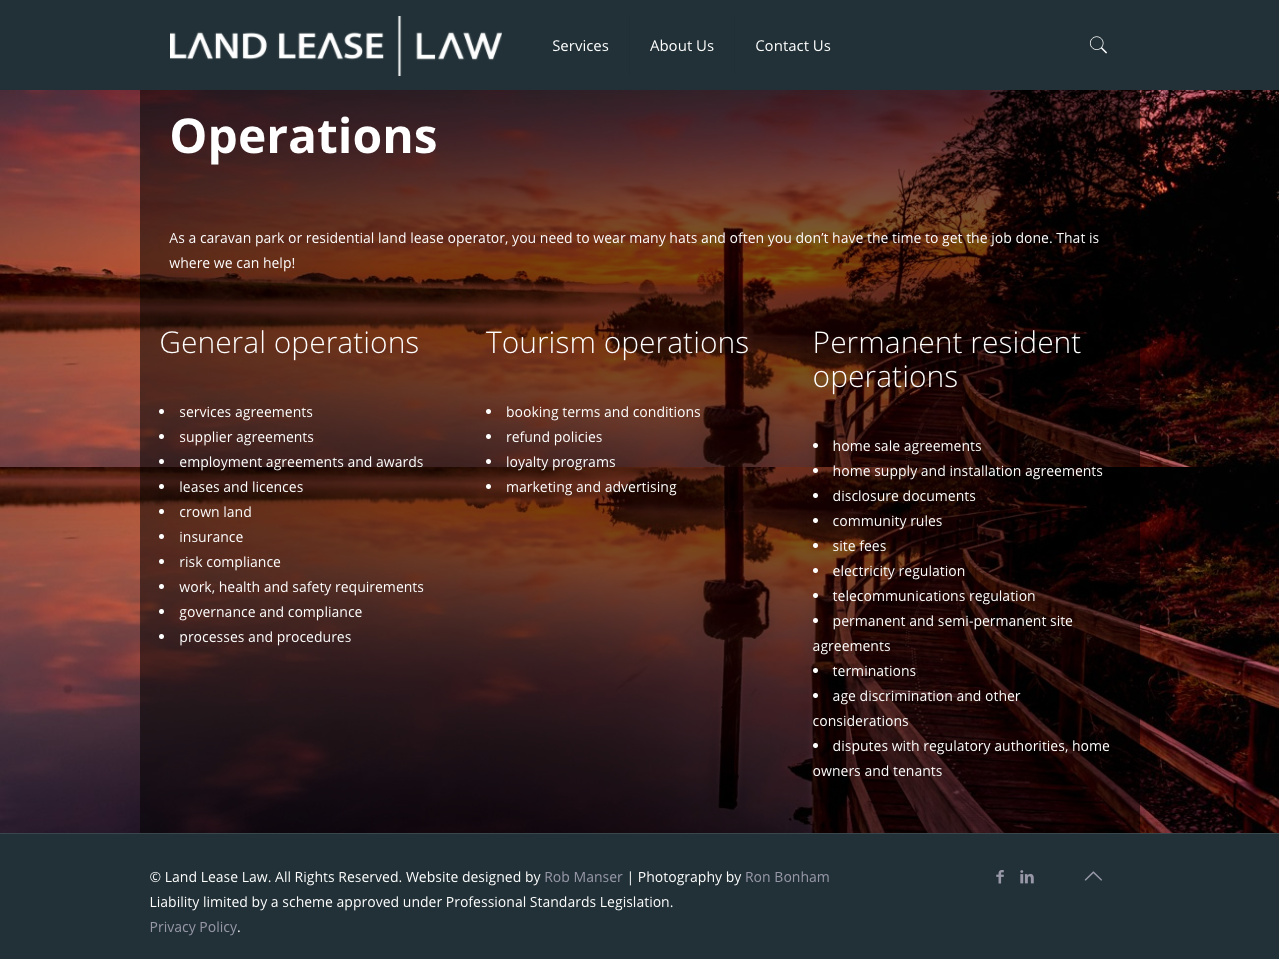 screencapture-landleaselaw-au-operations-2-2020-10-19-22_51_40